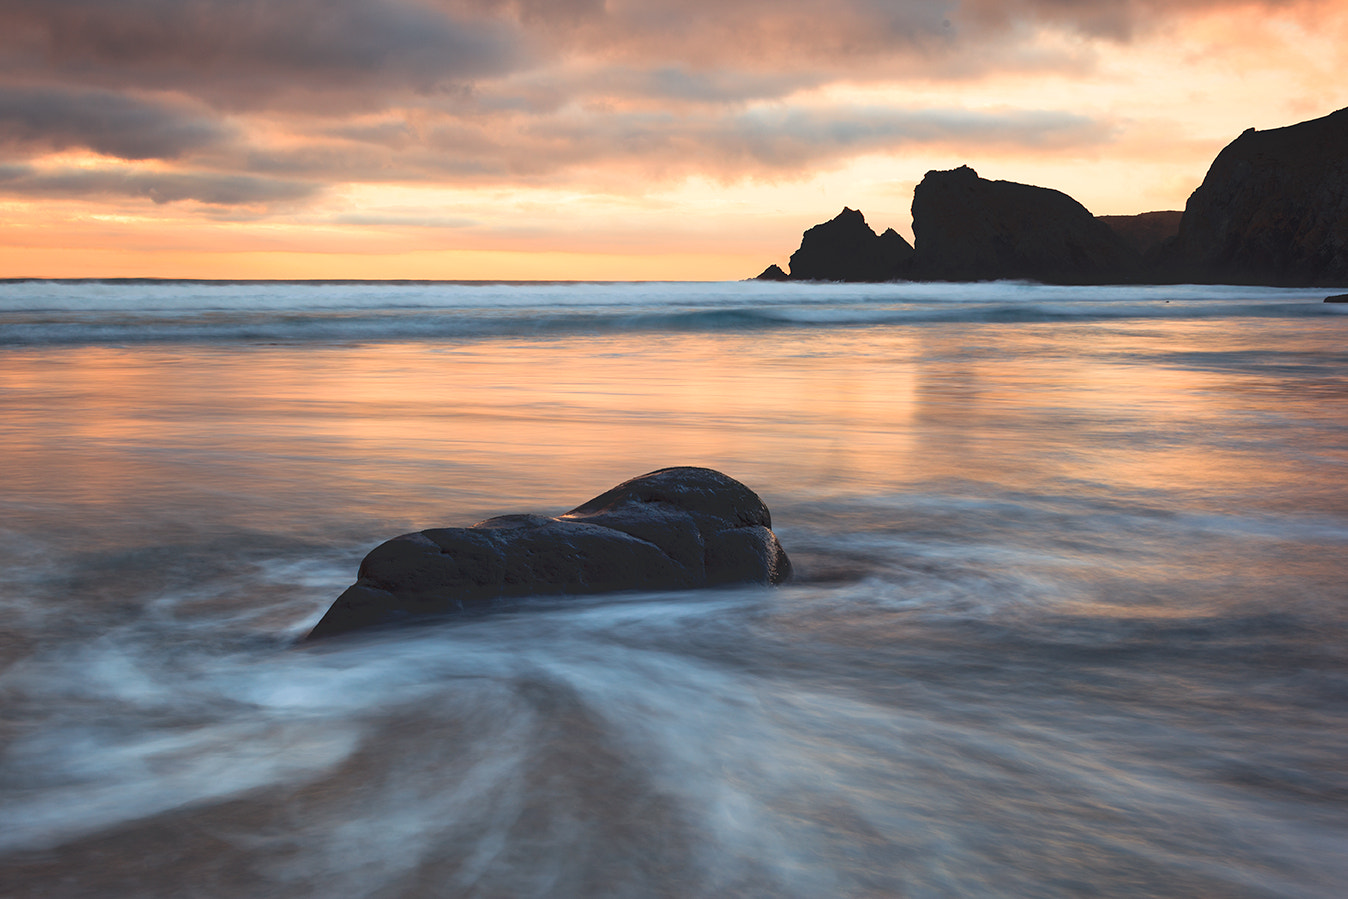 Photograph Contented Isolation by Joe Rainbow on 500px